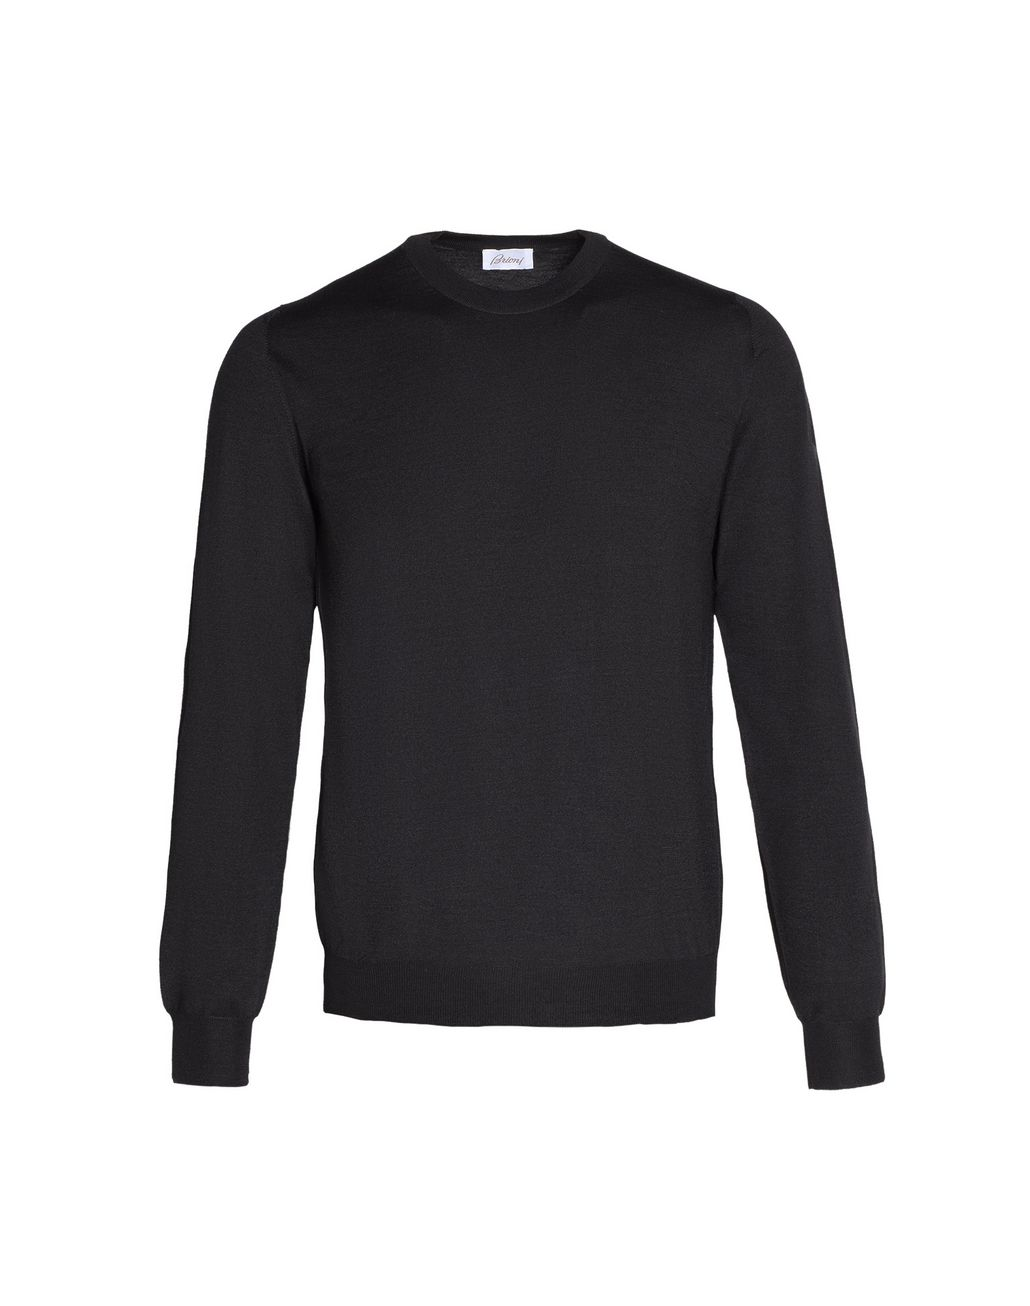 BRIONI 'Essential' Black Crew-Neck Sweater Knitwear Man f